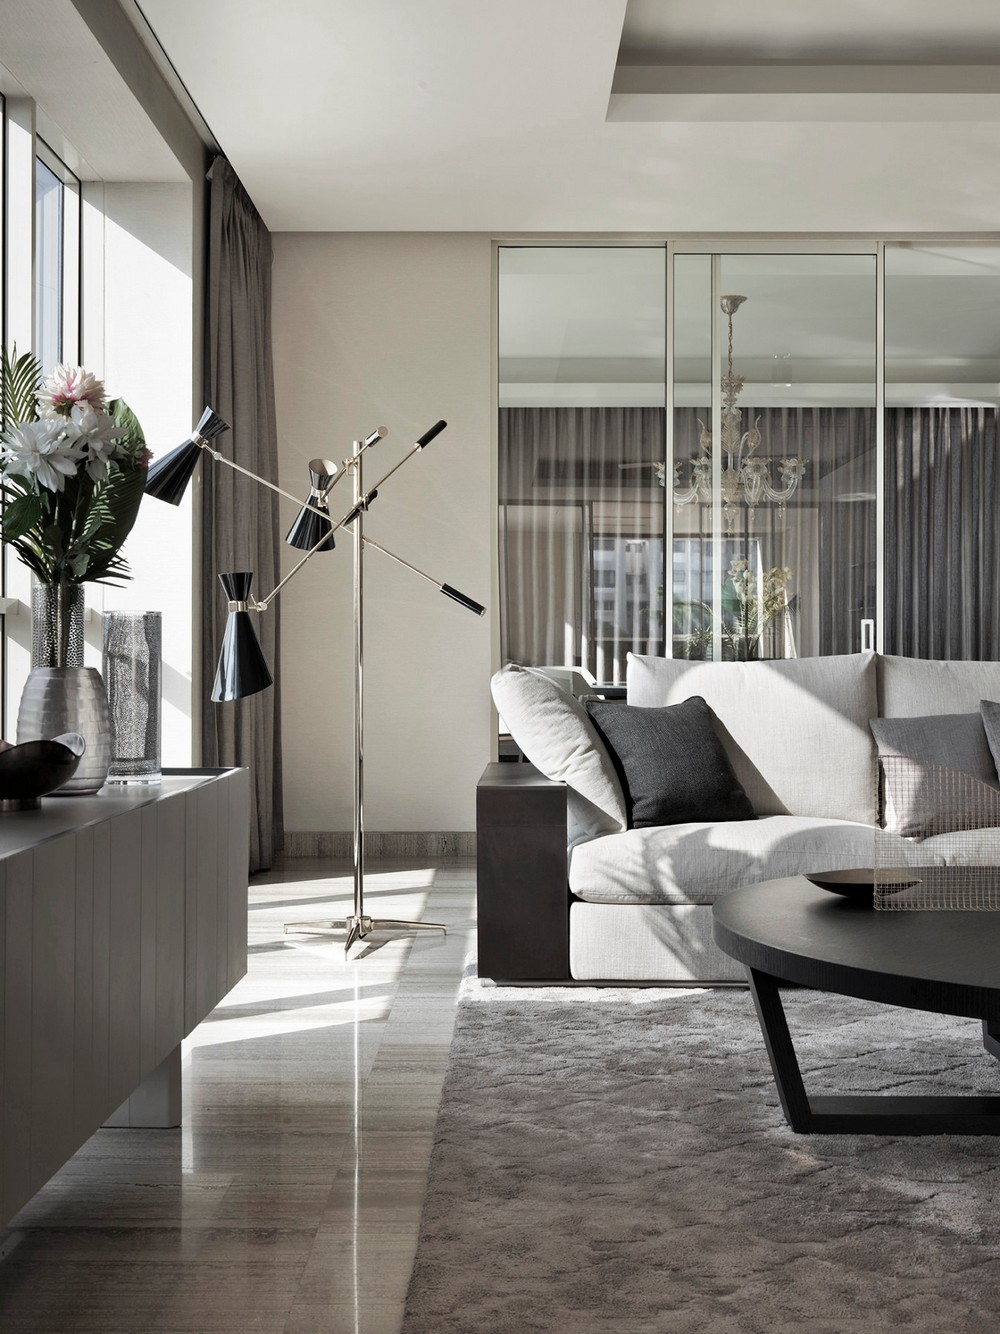 5 Gorgeous Living Room Design Inspirations By Top Italian Designers living room design 5 Gorgeous Living Room Design Inspirations By Top Italian Designers 5 Gorgeous Living Room Design Inspirations By Top Italian Designers 5